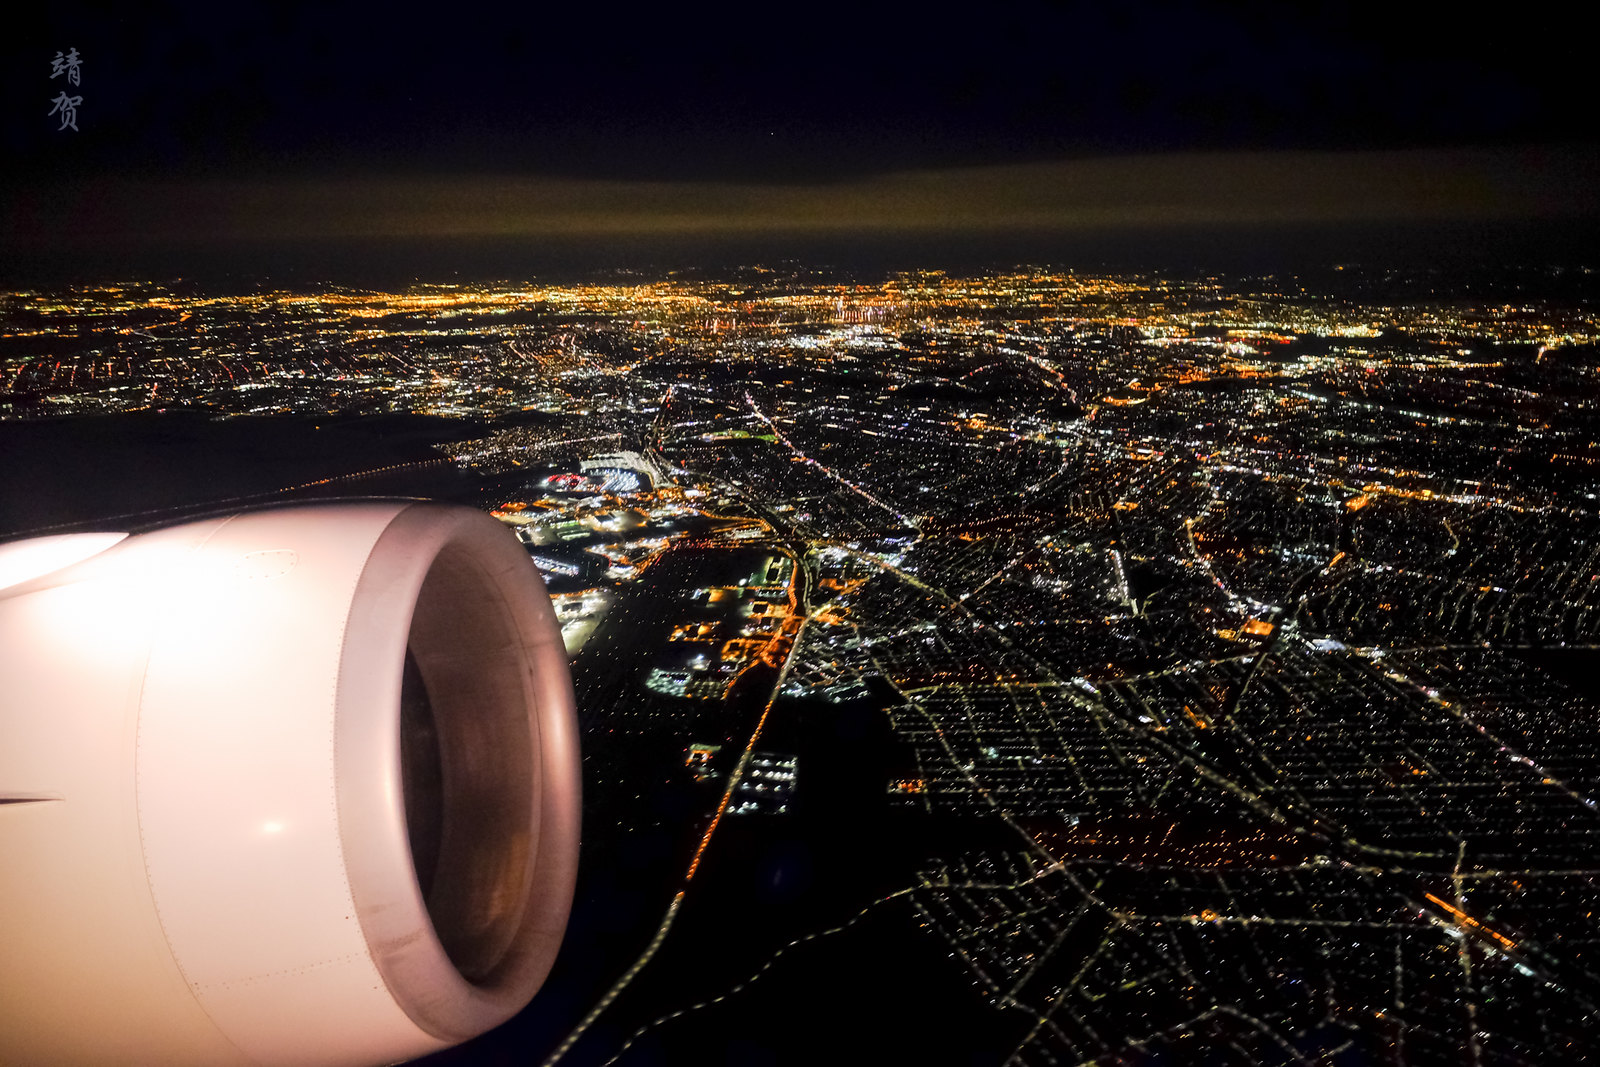 City lights from the air